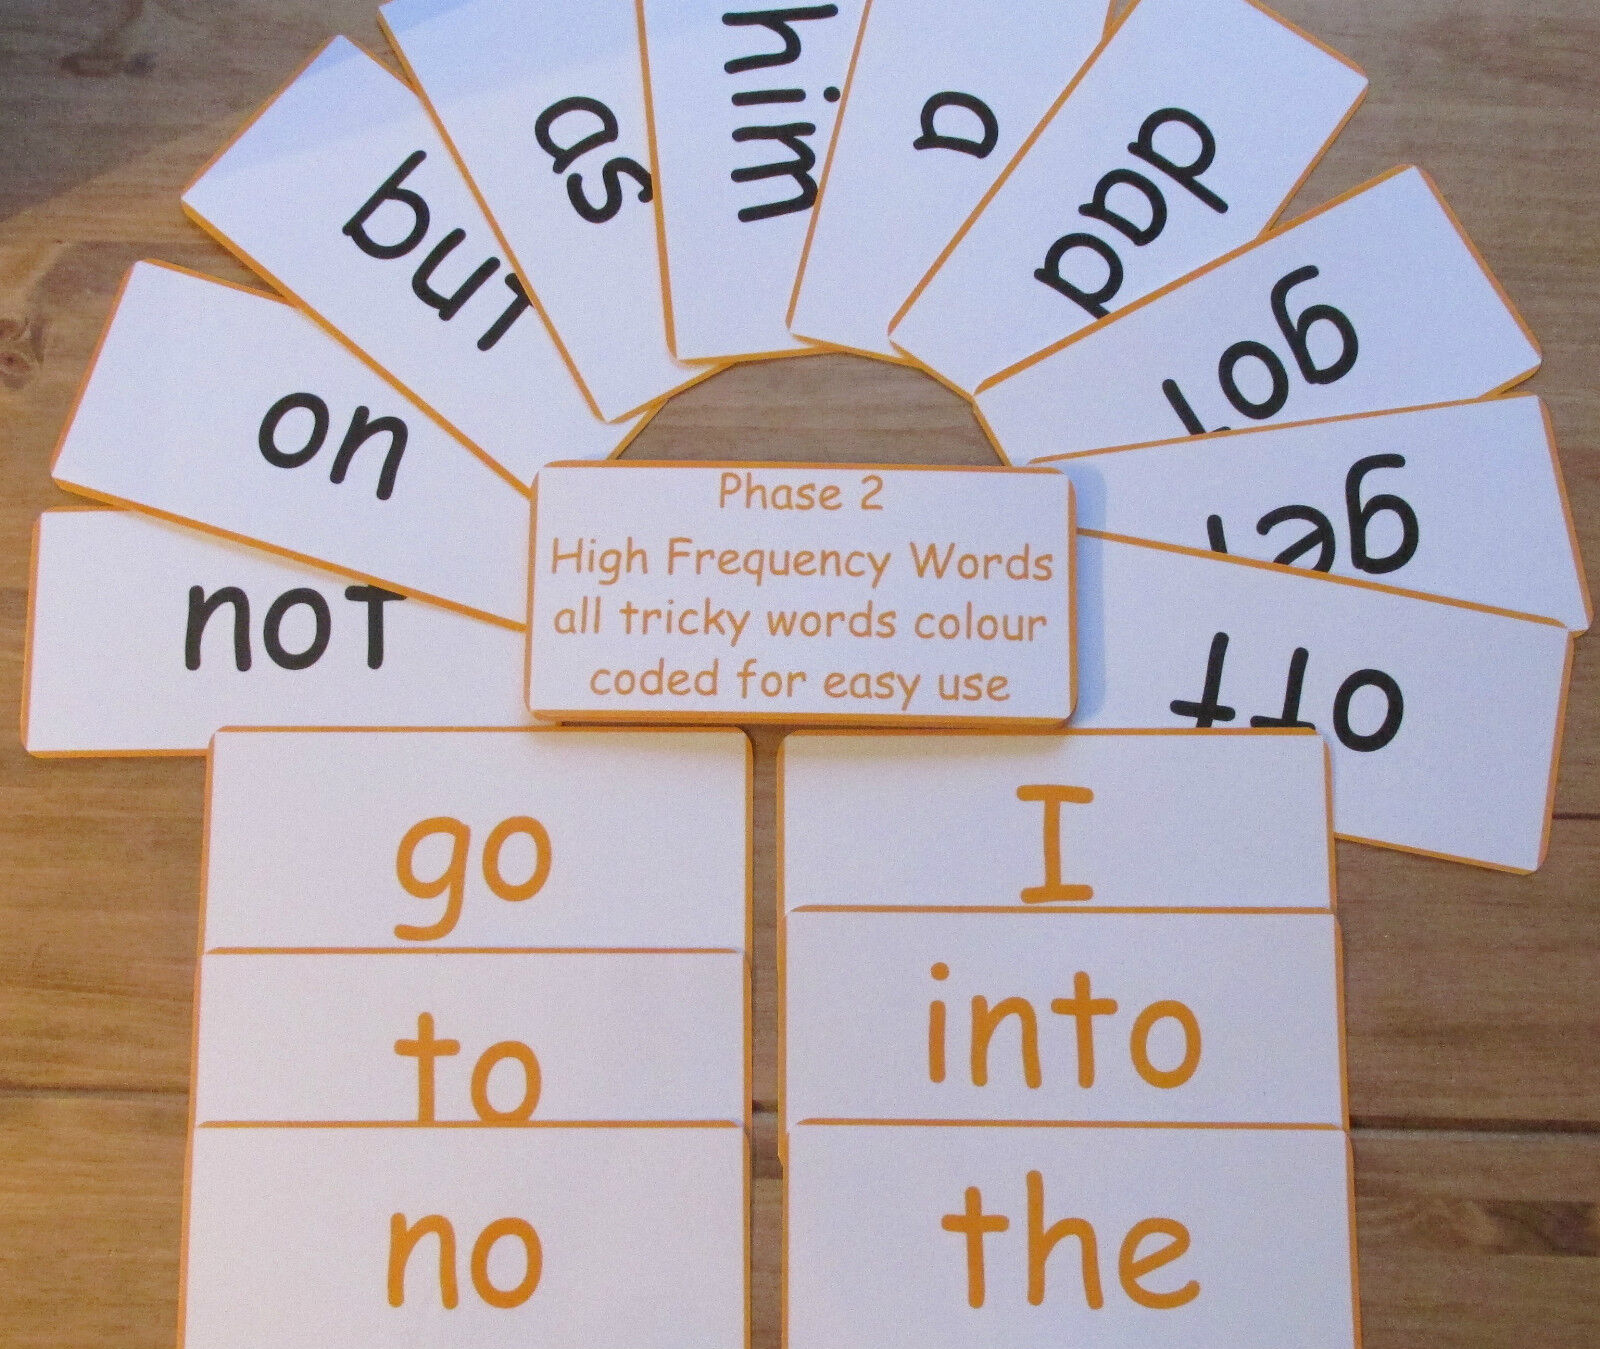 Phases 2 - 5 colour coded EXTRA large 20 cm x 9.5 cm work with Phonics & Sounds